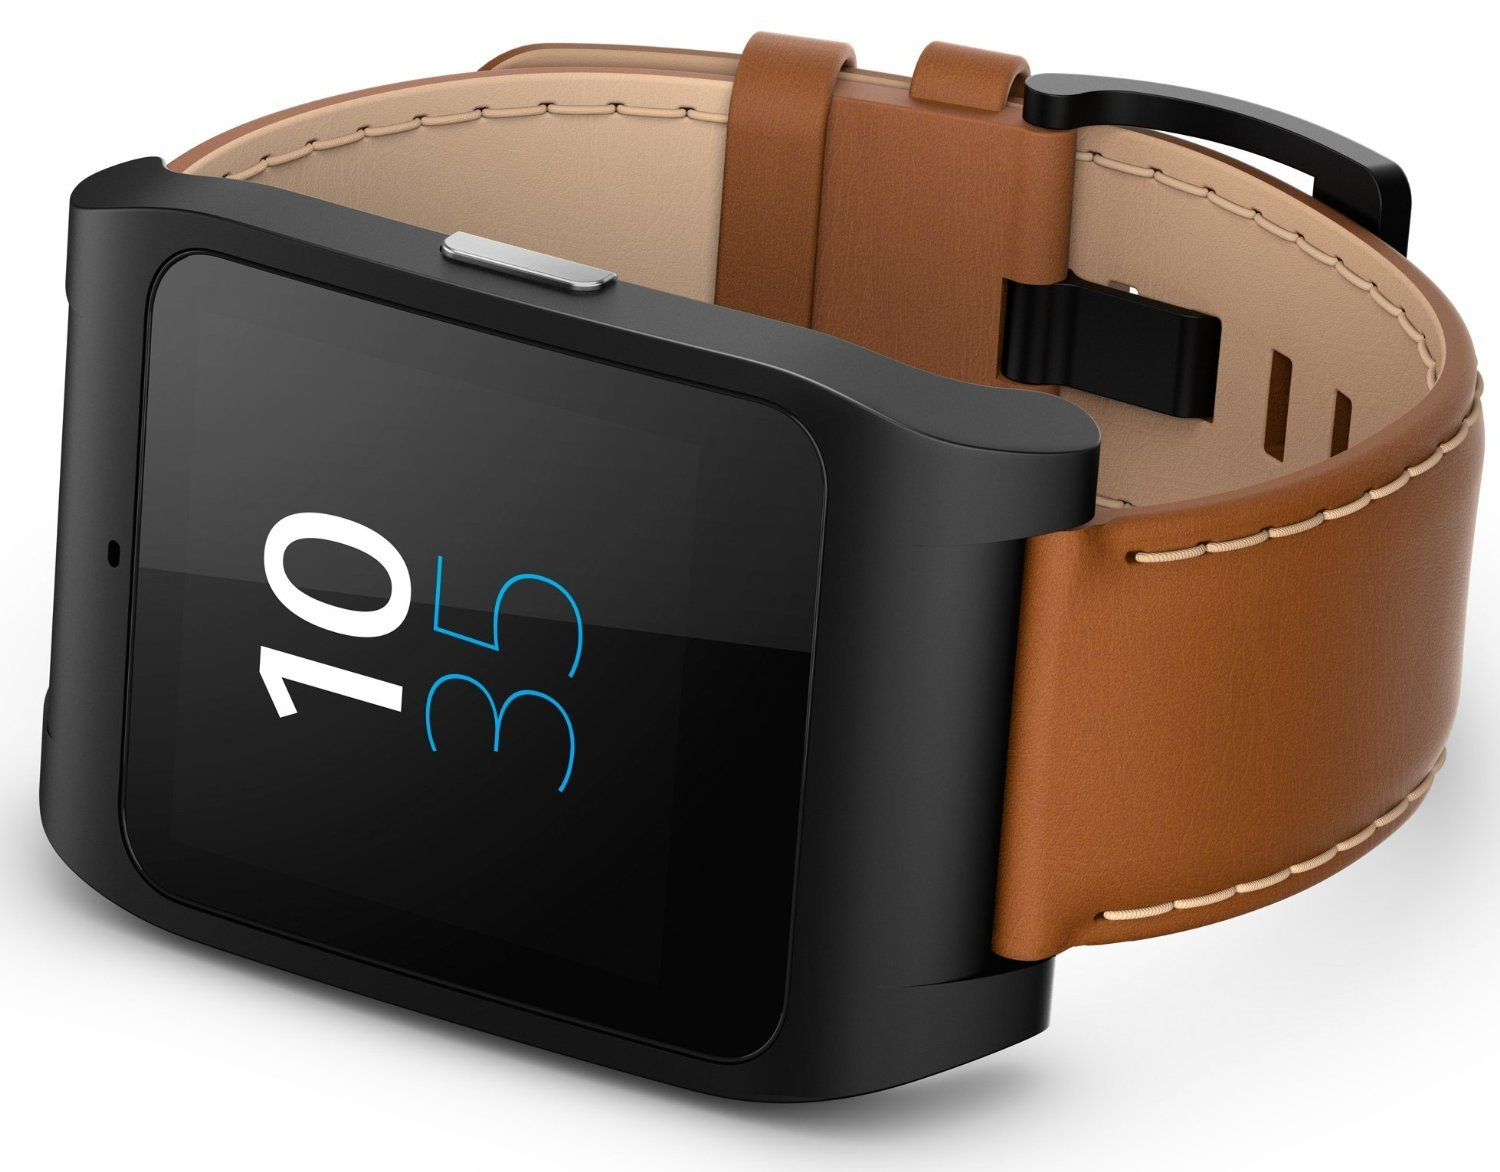 sony smartwatch 3 leder braun test smartwatch. Black Bedroom Furniture Sets. Home Design Ideas